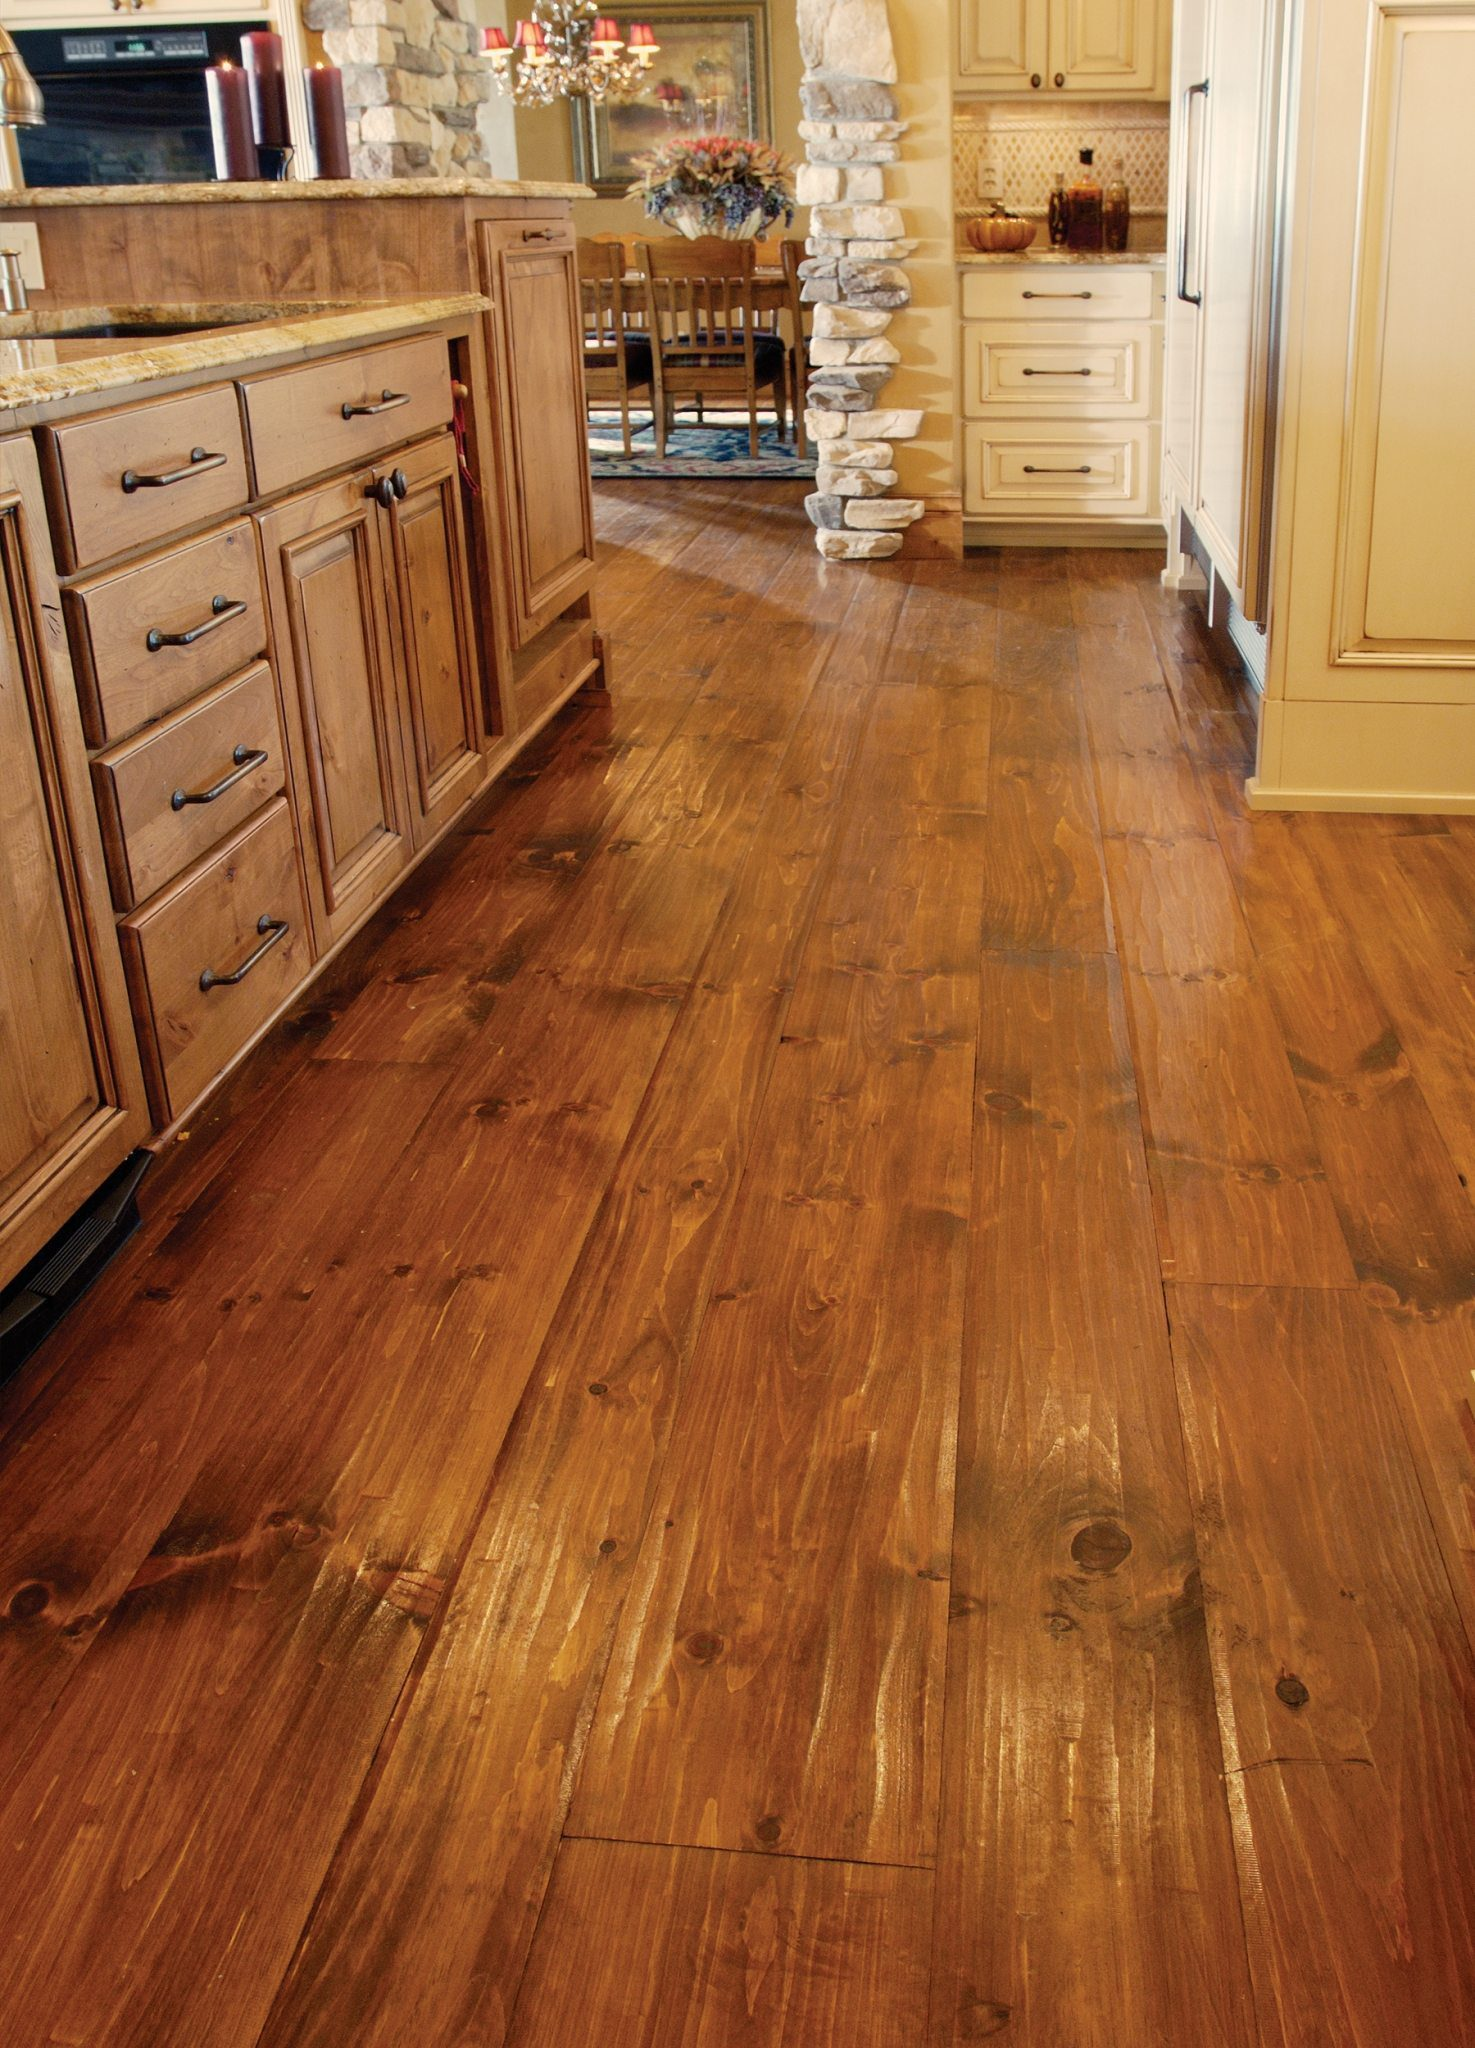 rugs for kitchen rolling chairs eastern white pine flooring in a